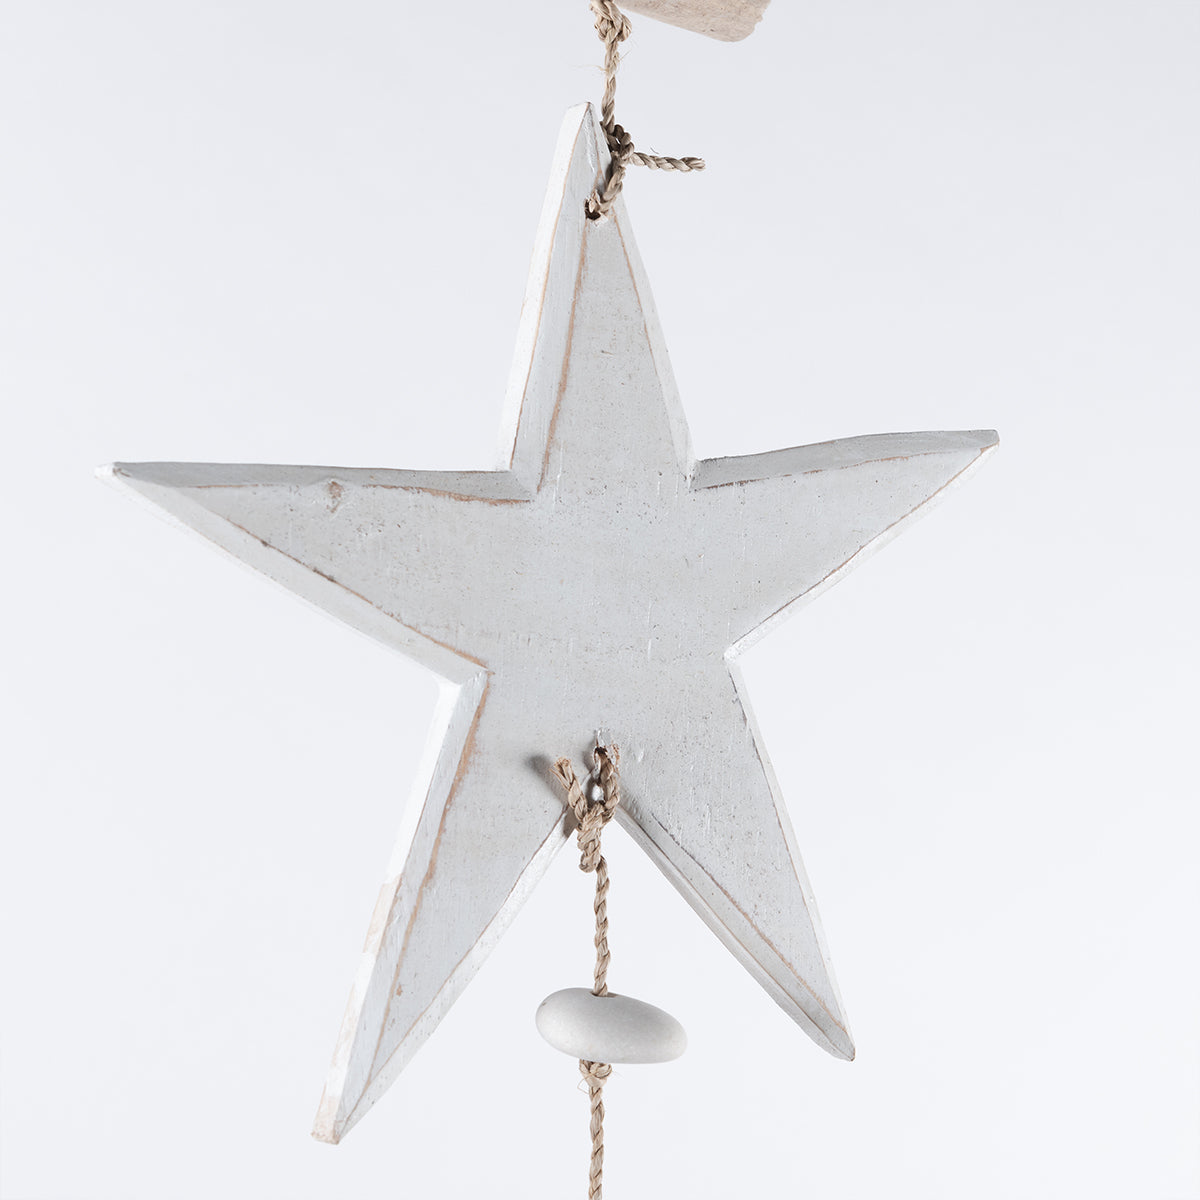 D/W STAR HANGER 1.25MT